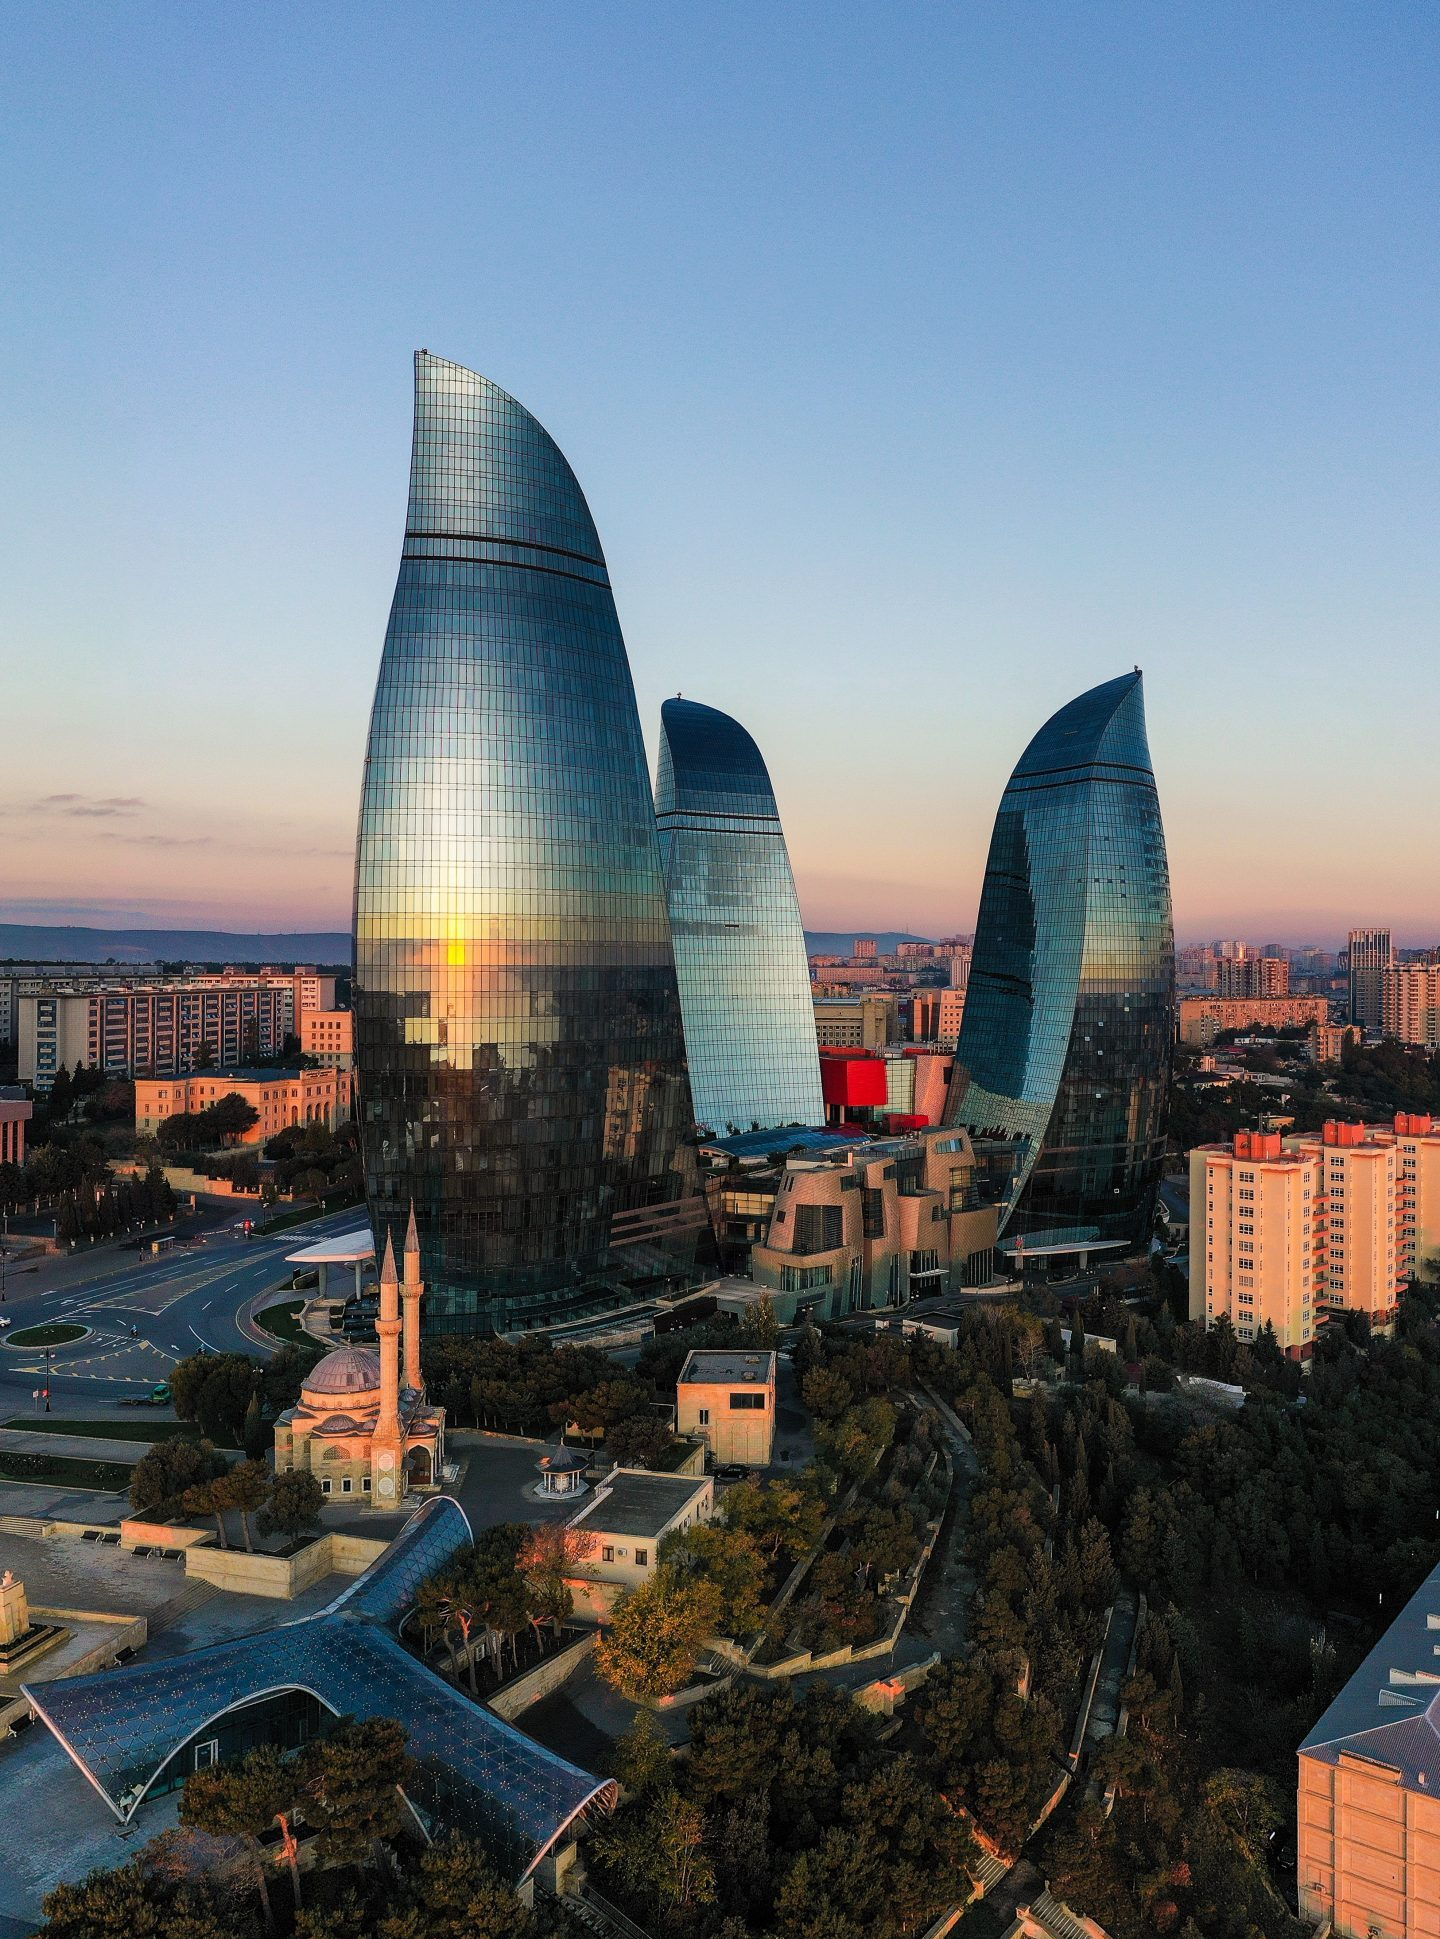 Baku Azerbaijan, underrated city